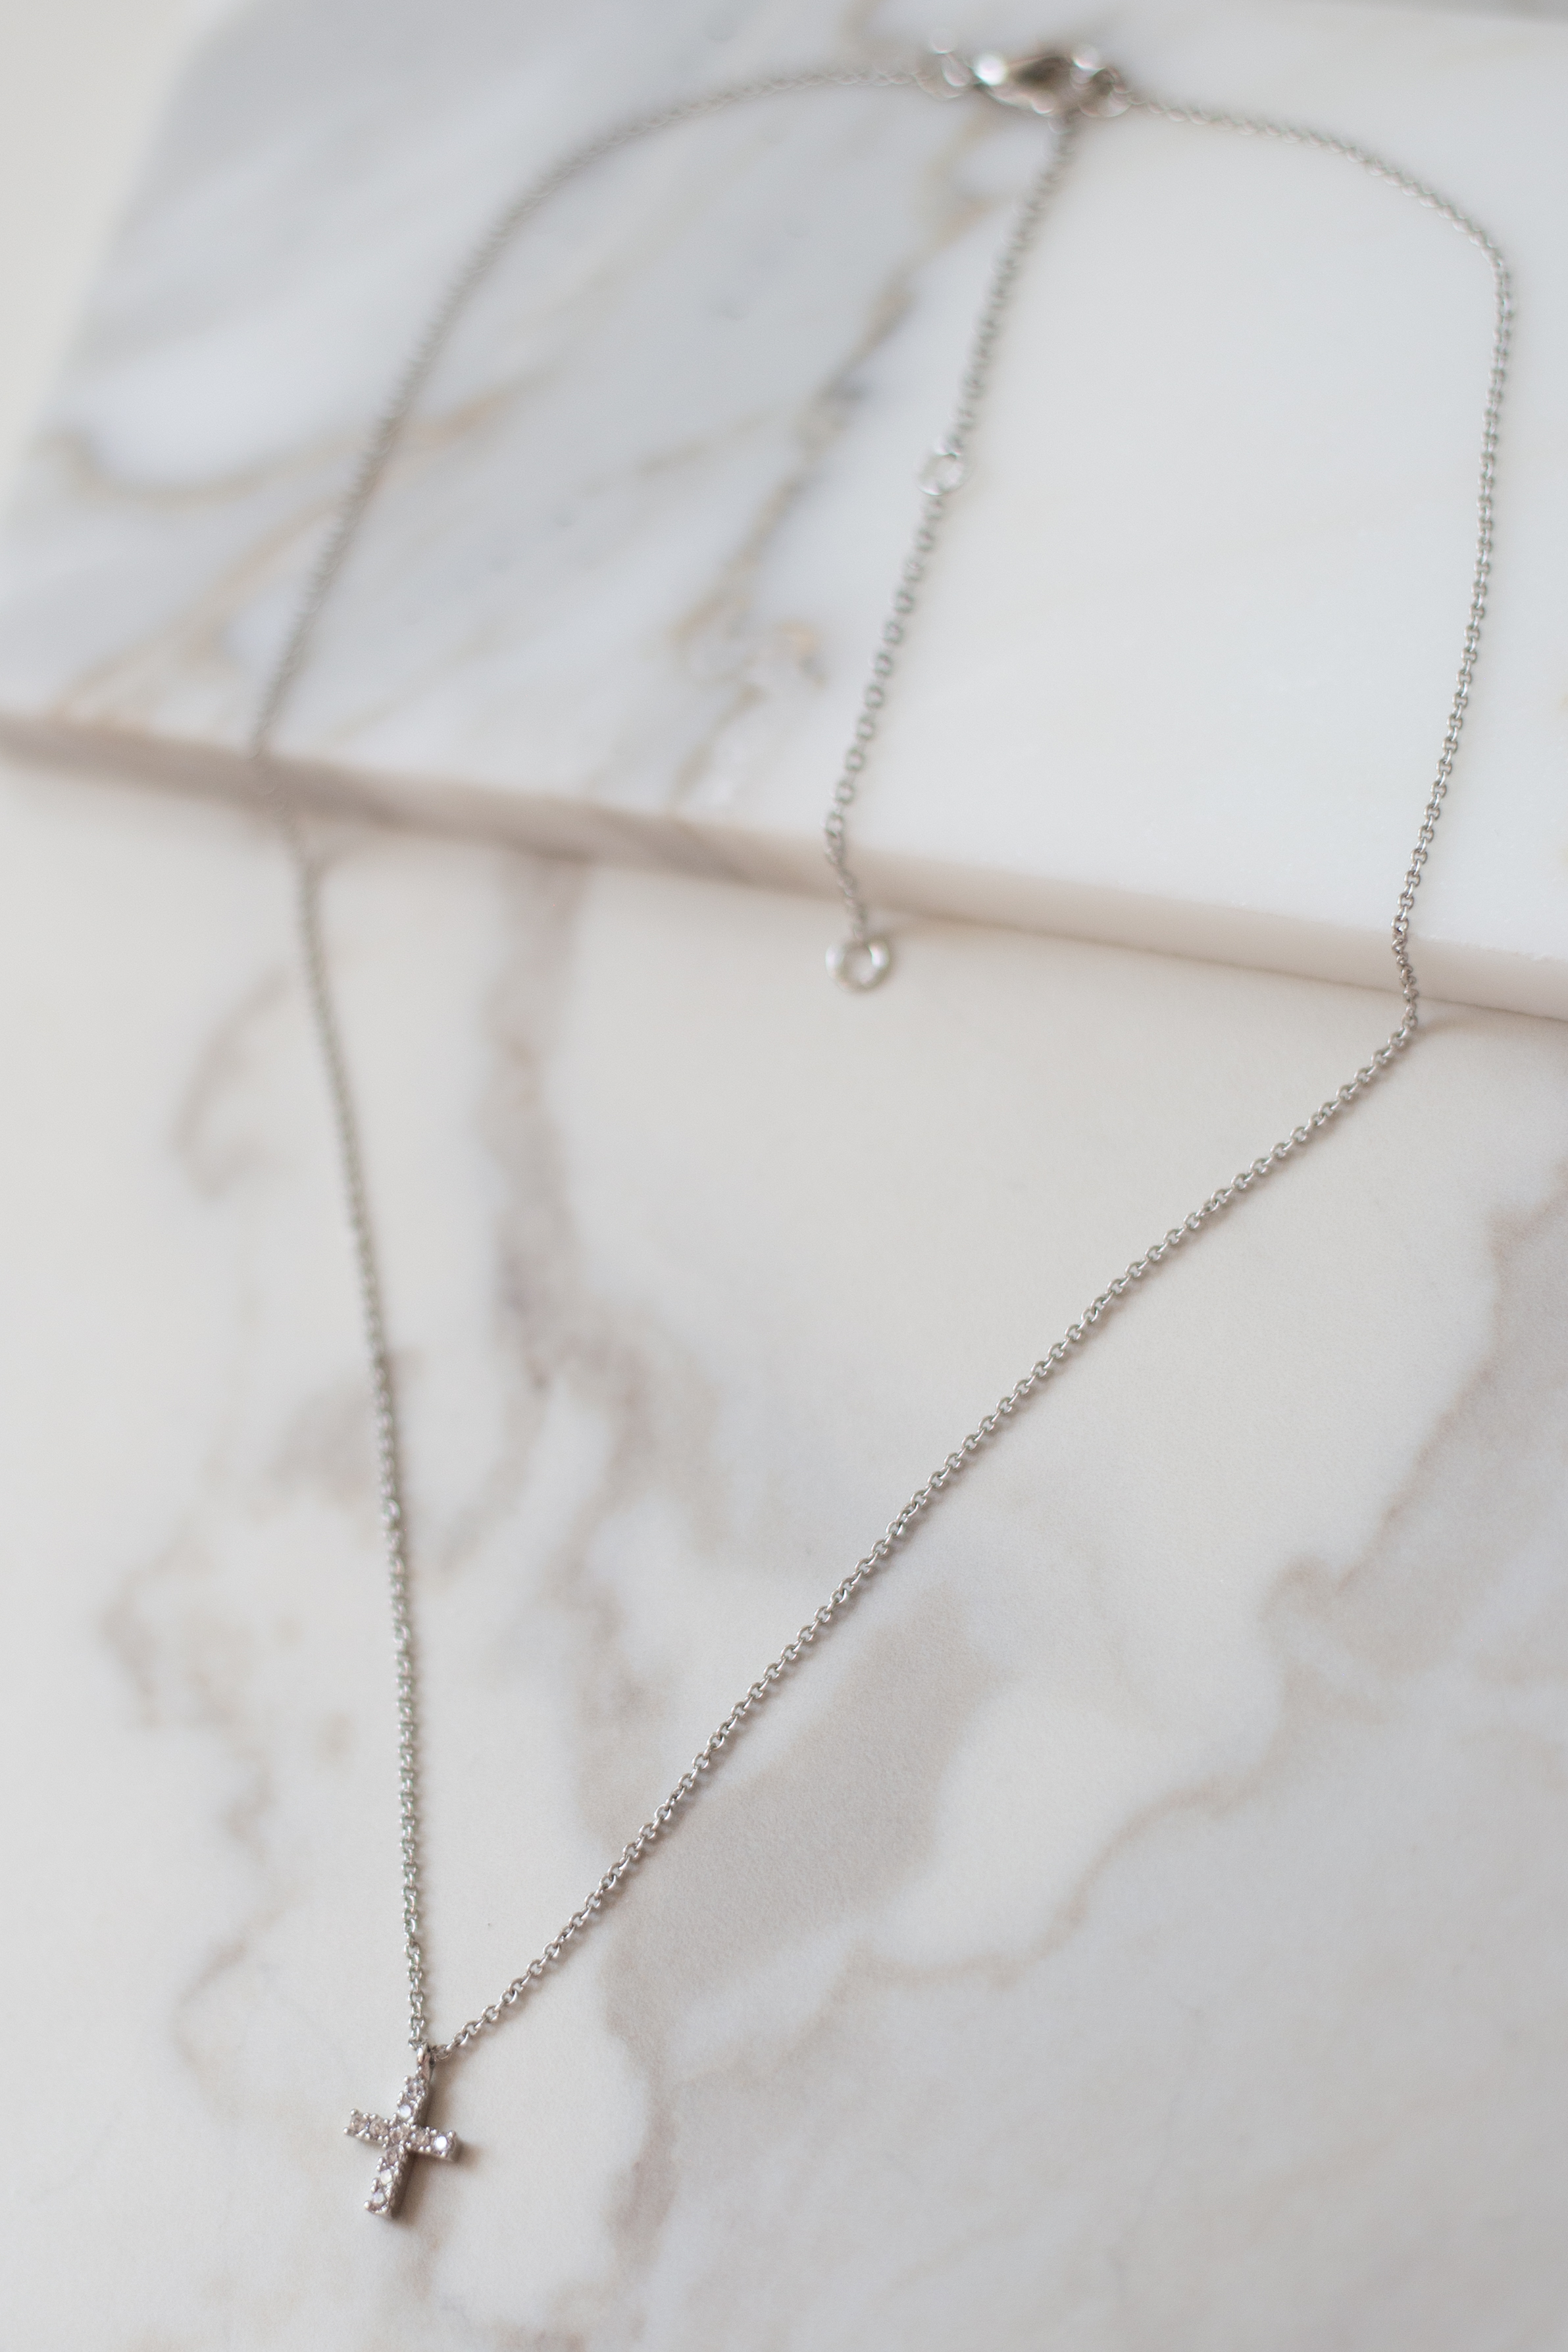 Silver Dainty Necklace with Cross Rhinestone Pendant